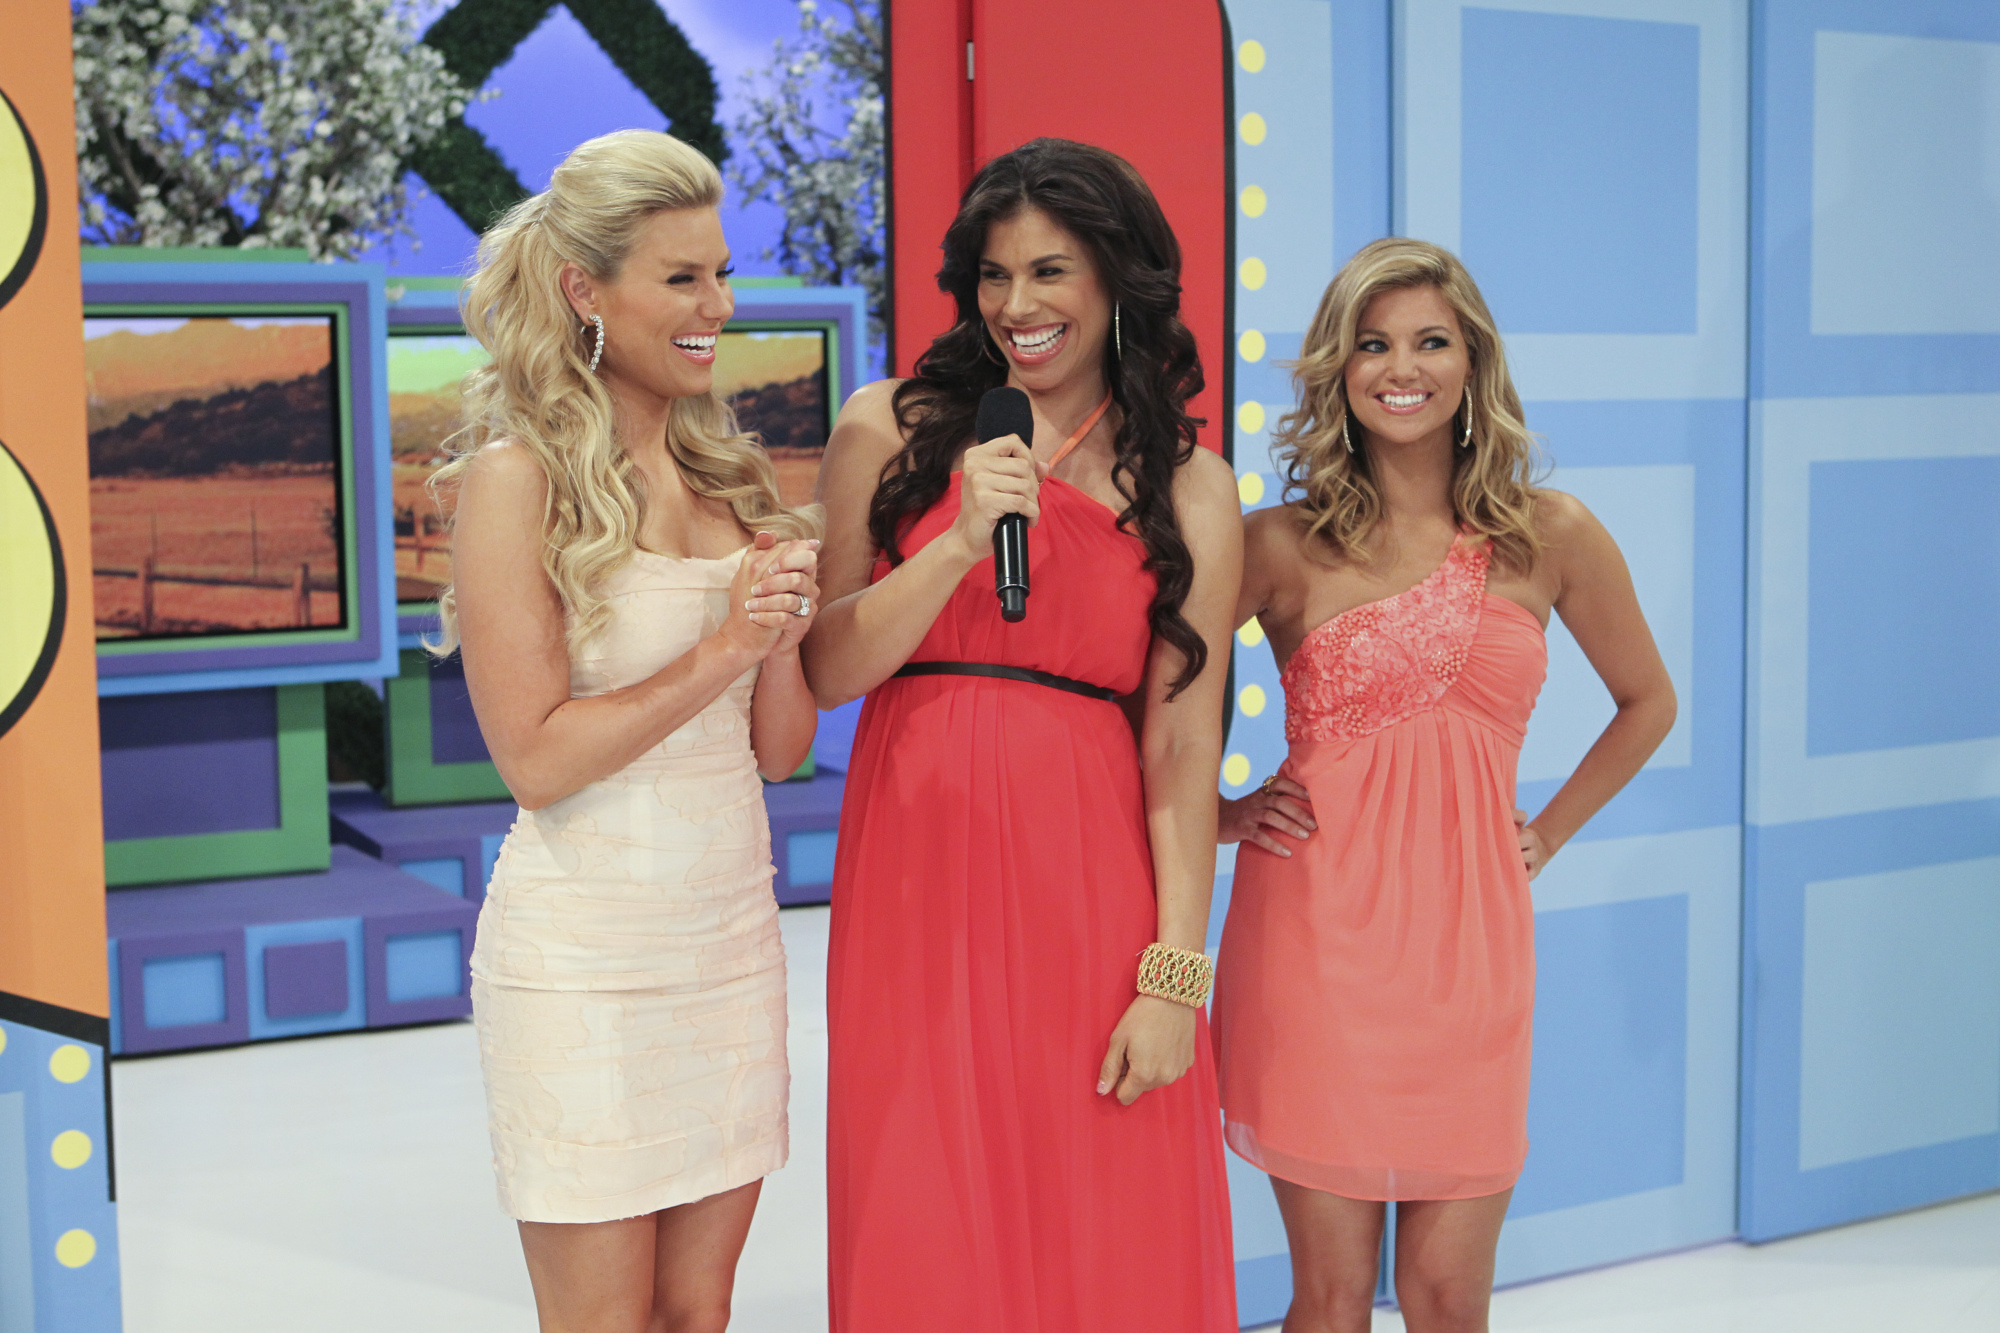 TPIR's Amber, Gwendolyn, and Rachel